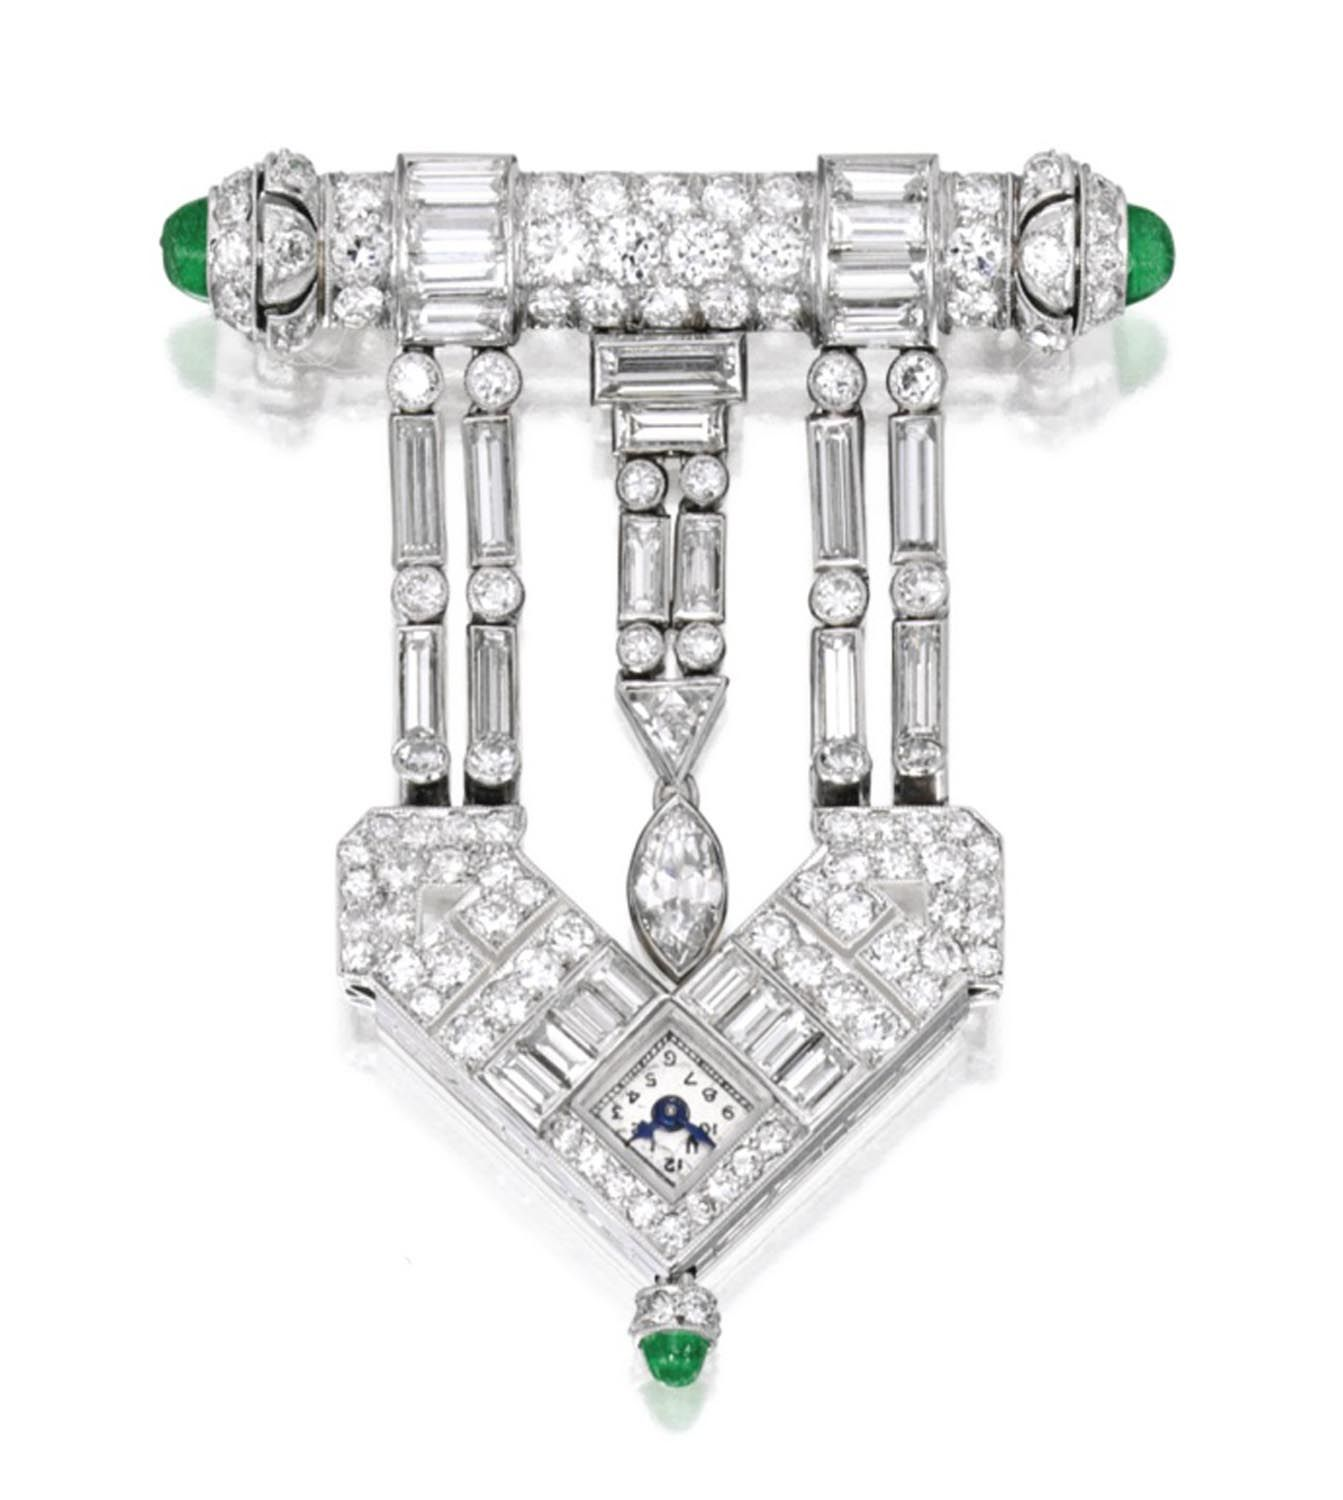 Platinum, Diamond and Emerald Lapel-Watch. Flexible lapel-watch of geometric design, set with baguette, triangle, marquise-shaped and old European-cut diamonds, accented by cabochon emeralds, the movement signed Niton Geneve, numbered 5355; circa 1920. Sold Sept 2015 for $20,000 at Sotheby's.